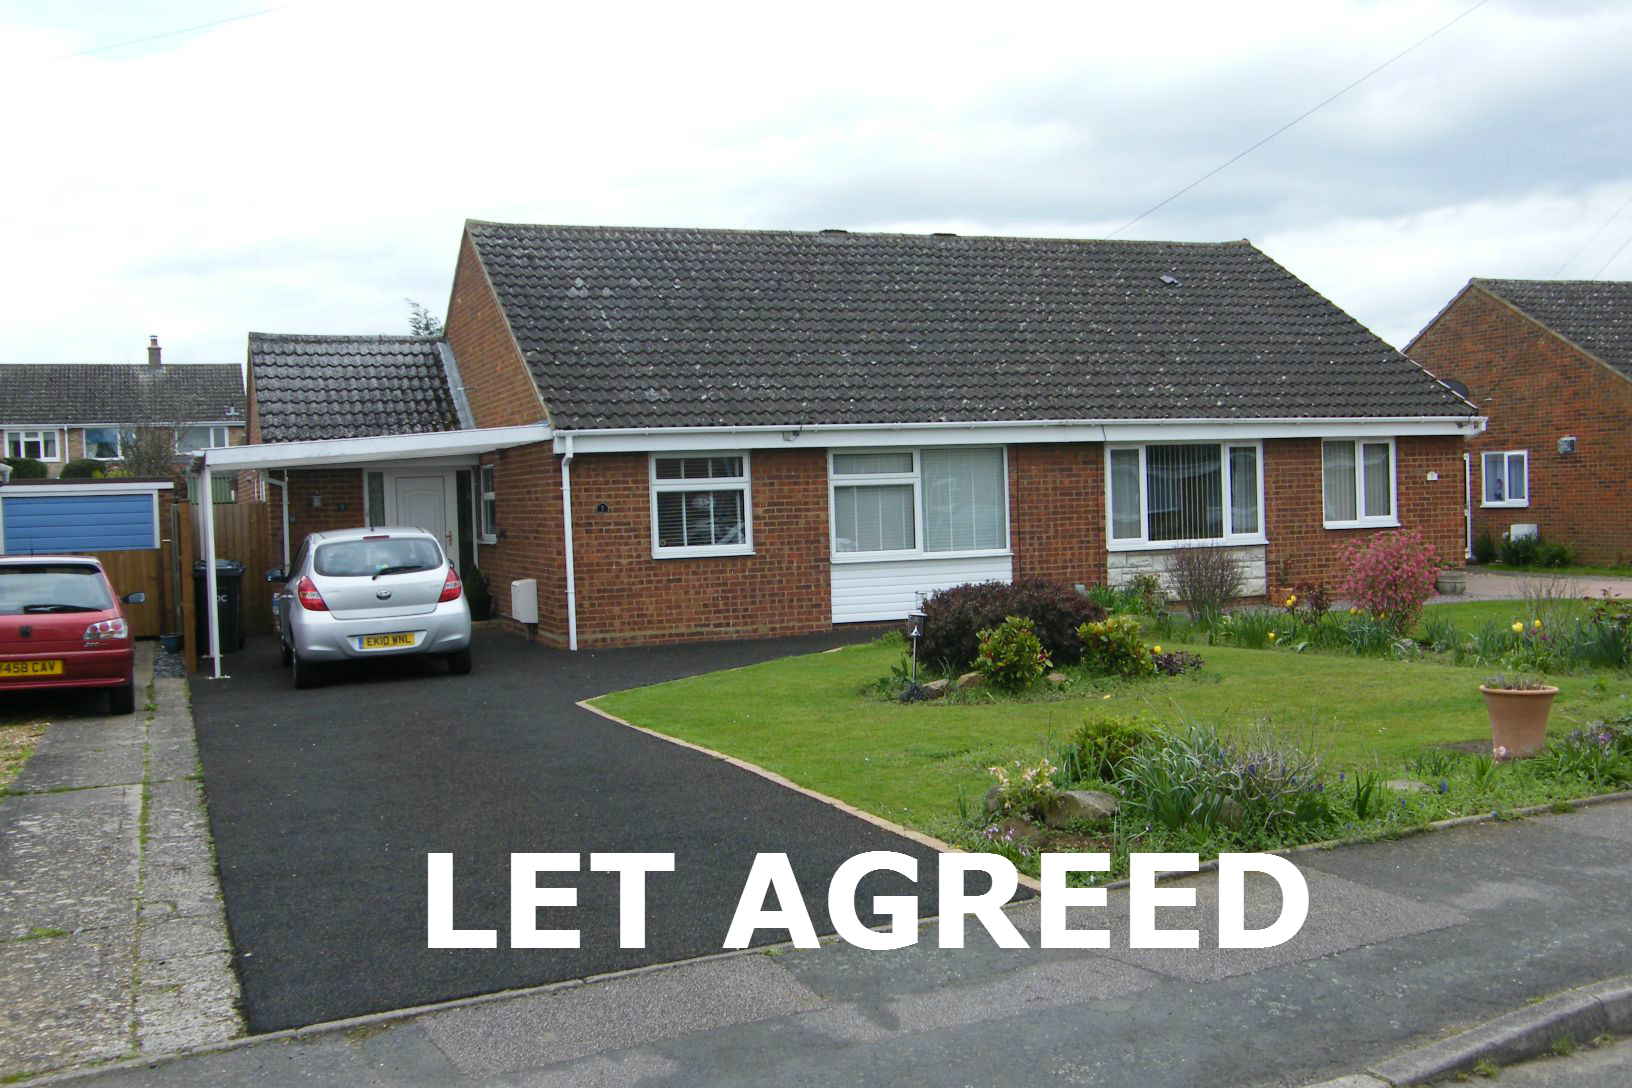 3 bedroom Bungalow to let in Little Paxton